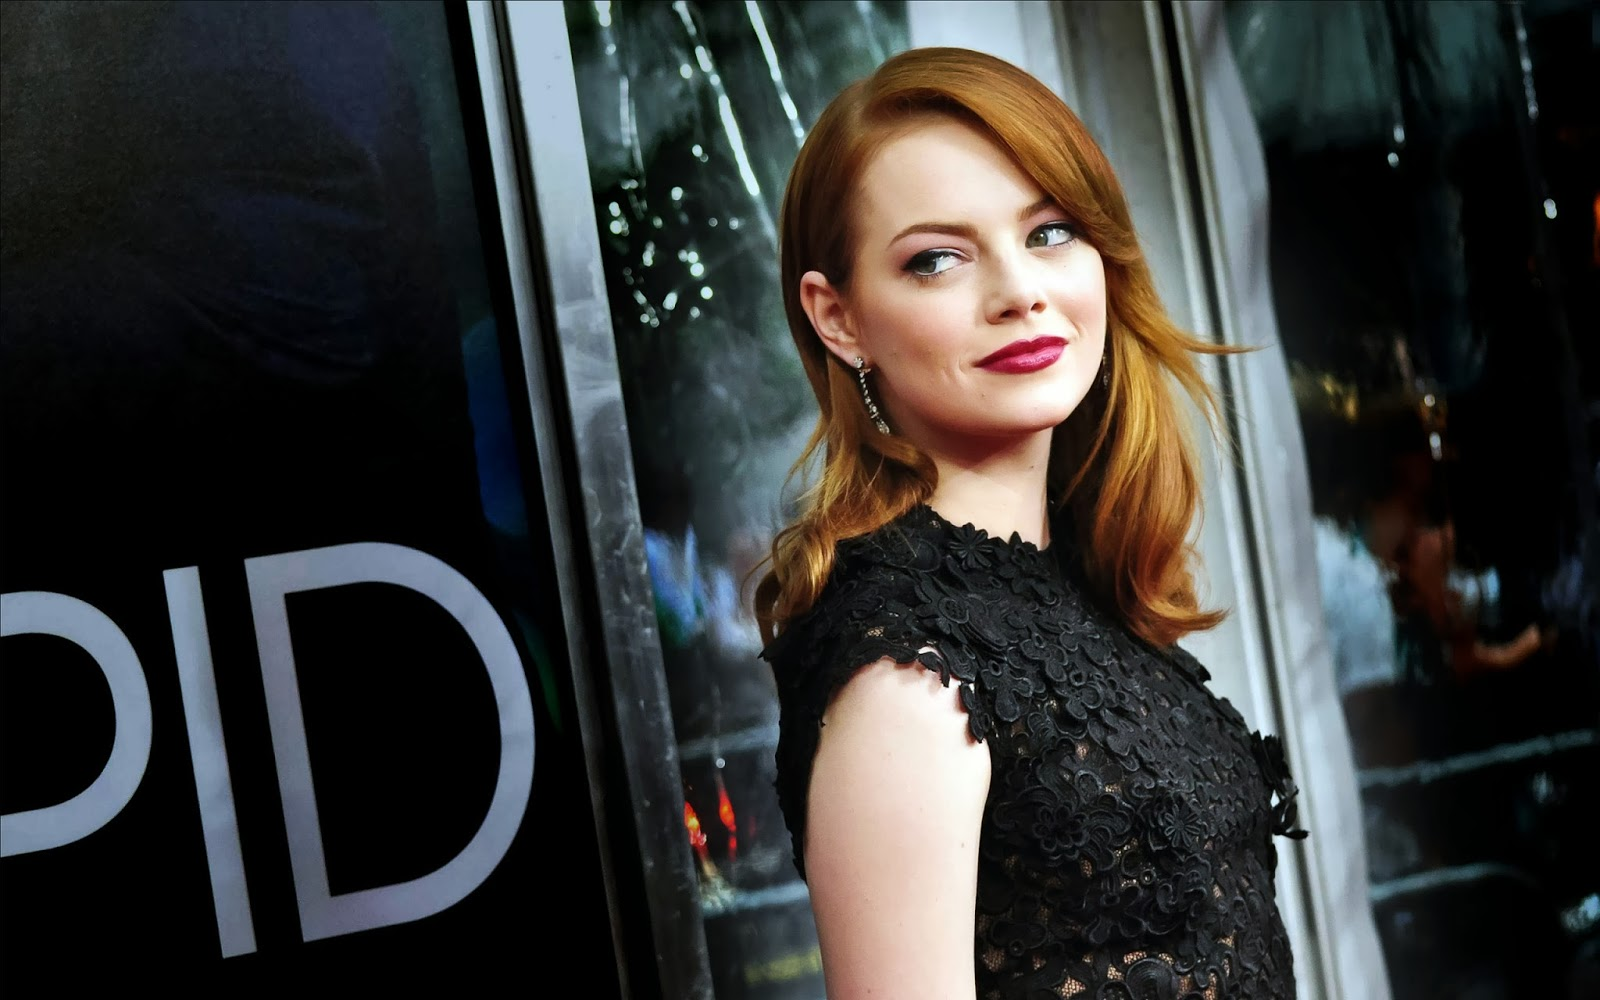 Emma Stone Amazing Spiderman Hd Wallpapers HDsheet - spider man actress emma stone wallpapers